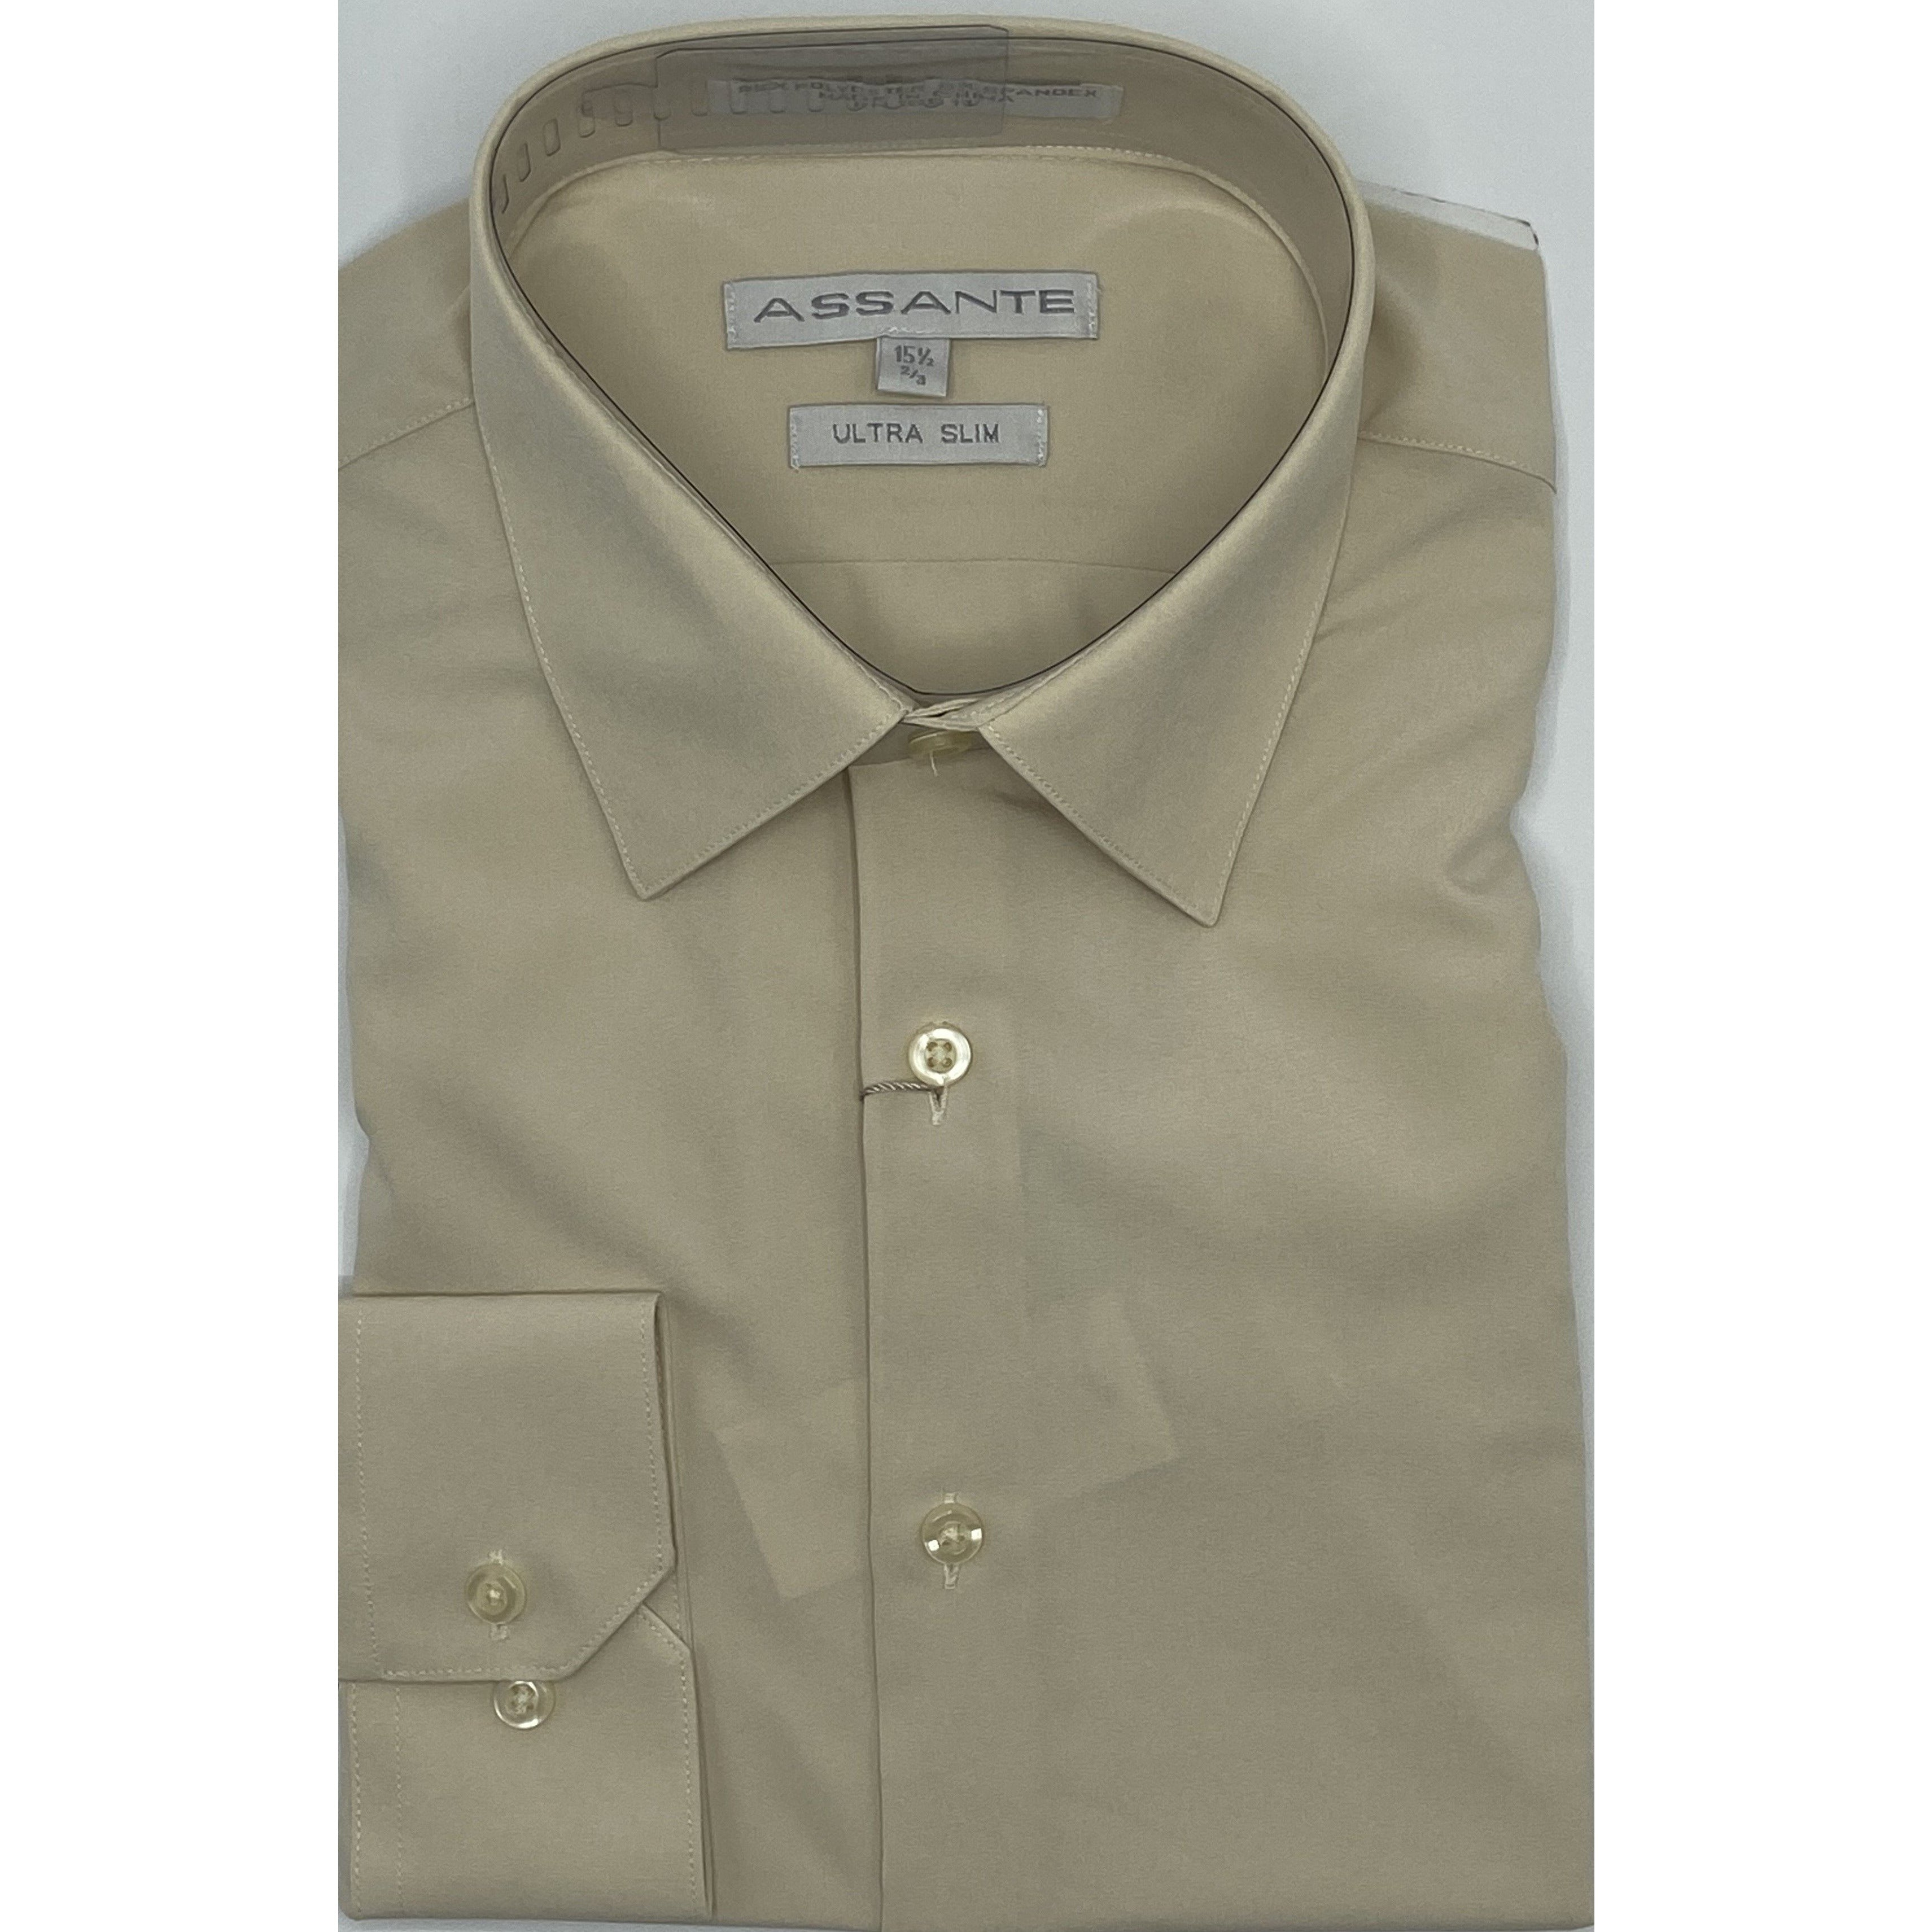 ASSANTE ULTRA SLIM DRESS SHIRT ECRU